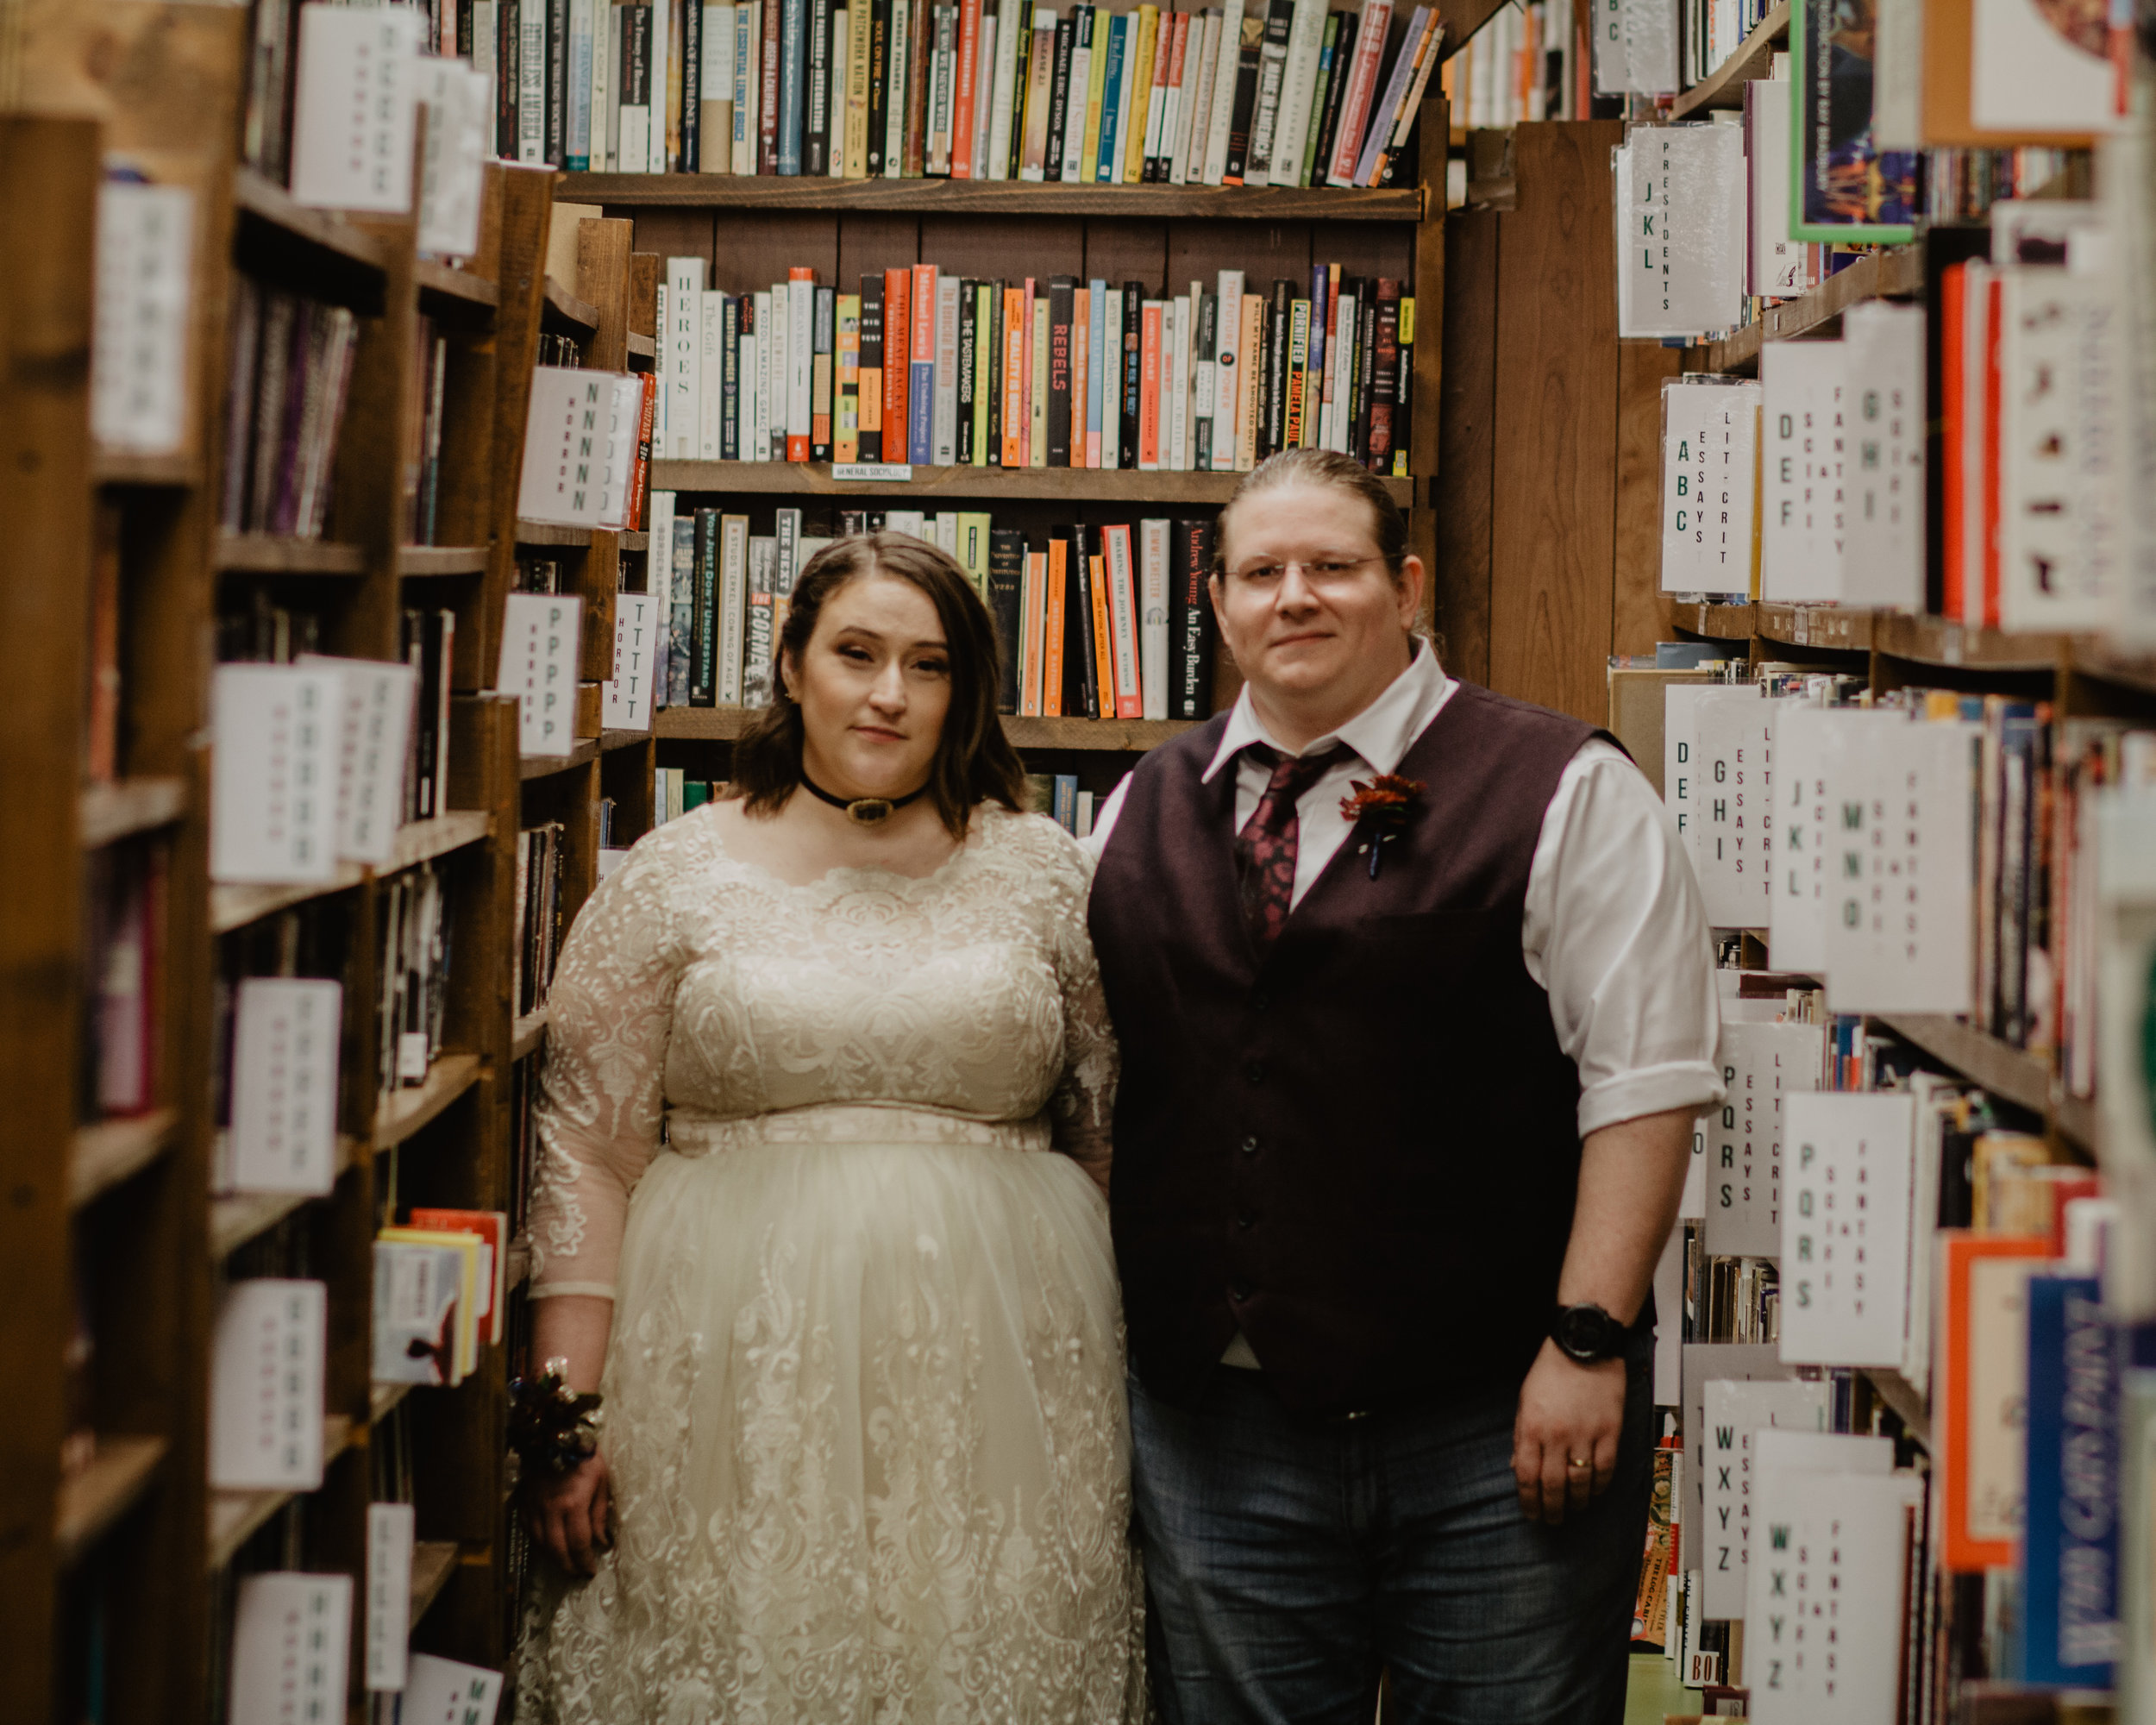 "Ryan and Caitlyn's Wedding - ""I had Bri shoot my very small, outdoor wedding in October 2018. I knew of her work because she had done the photos for my sister's wedding in 2016 and I really liked how she worked and, more importantly, how the photos turned out. To say that I liked my wedding photos would be an understatement. Bri did a fantastic job capturing the feeling of the day. Also, our personalities really jived, so when she suggested some impromptu photos at Books In Stock, I was all for it. There were a total of 10 people at my wedding, and by the end of it, Bri felt just like a second sister. I got a preview that night of a few choice photos and there was great communication about when I could expect the rest. I would highly recommend Henrietta Co. Photography.""-Caitlyn"